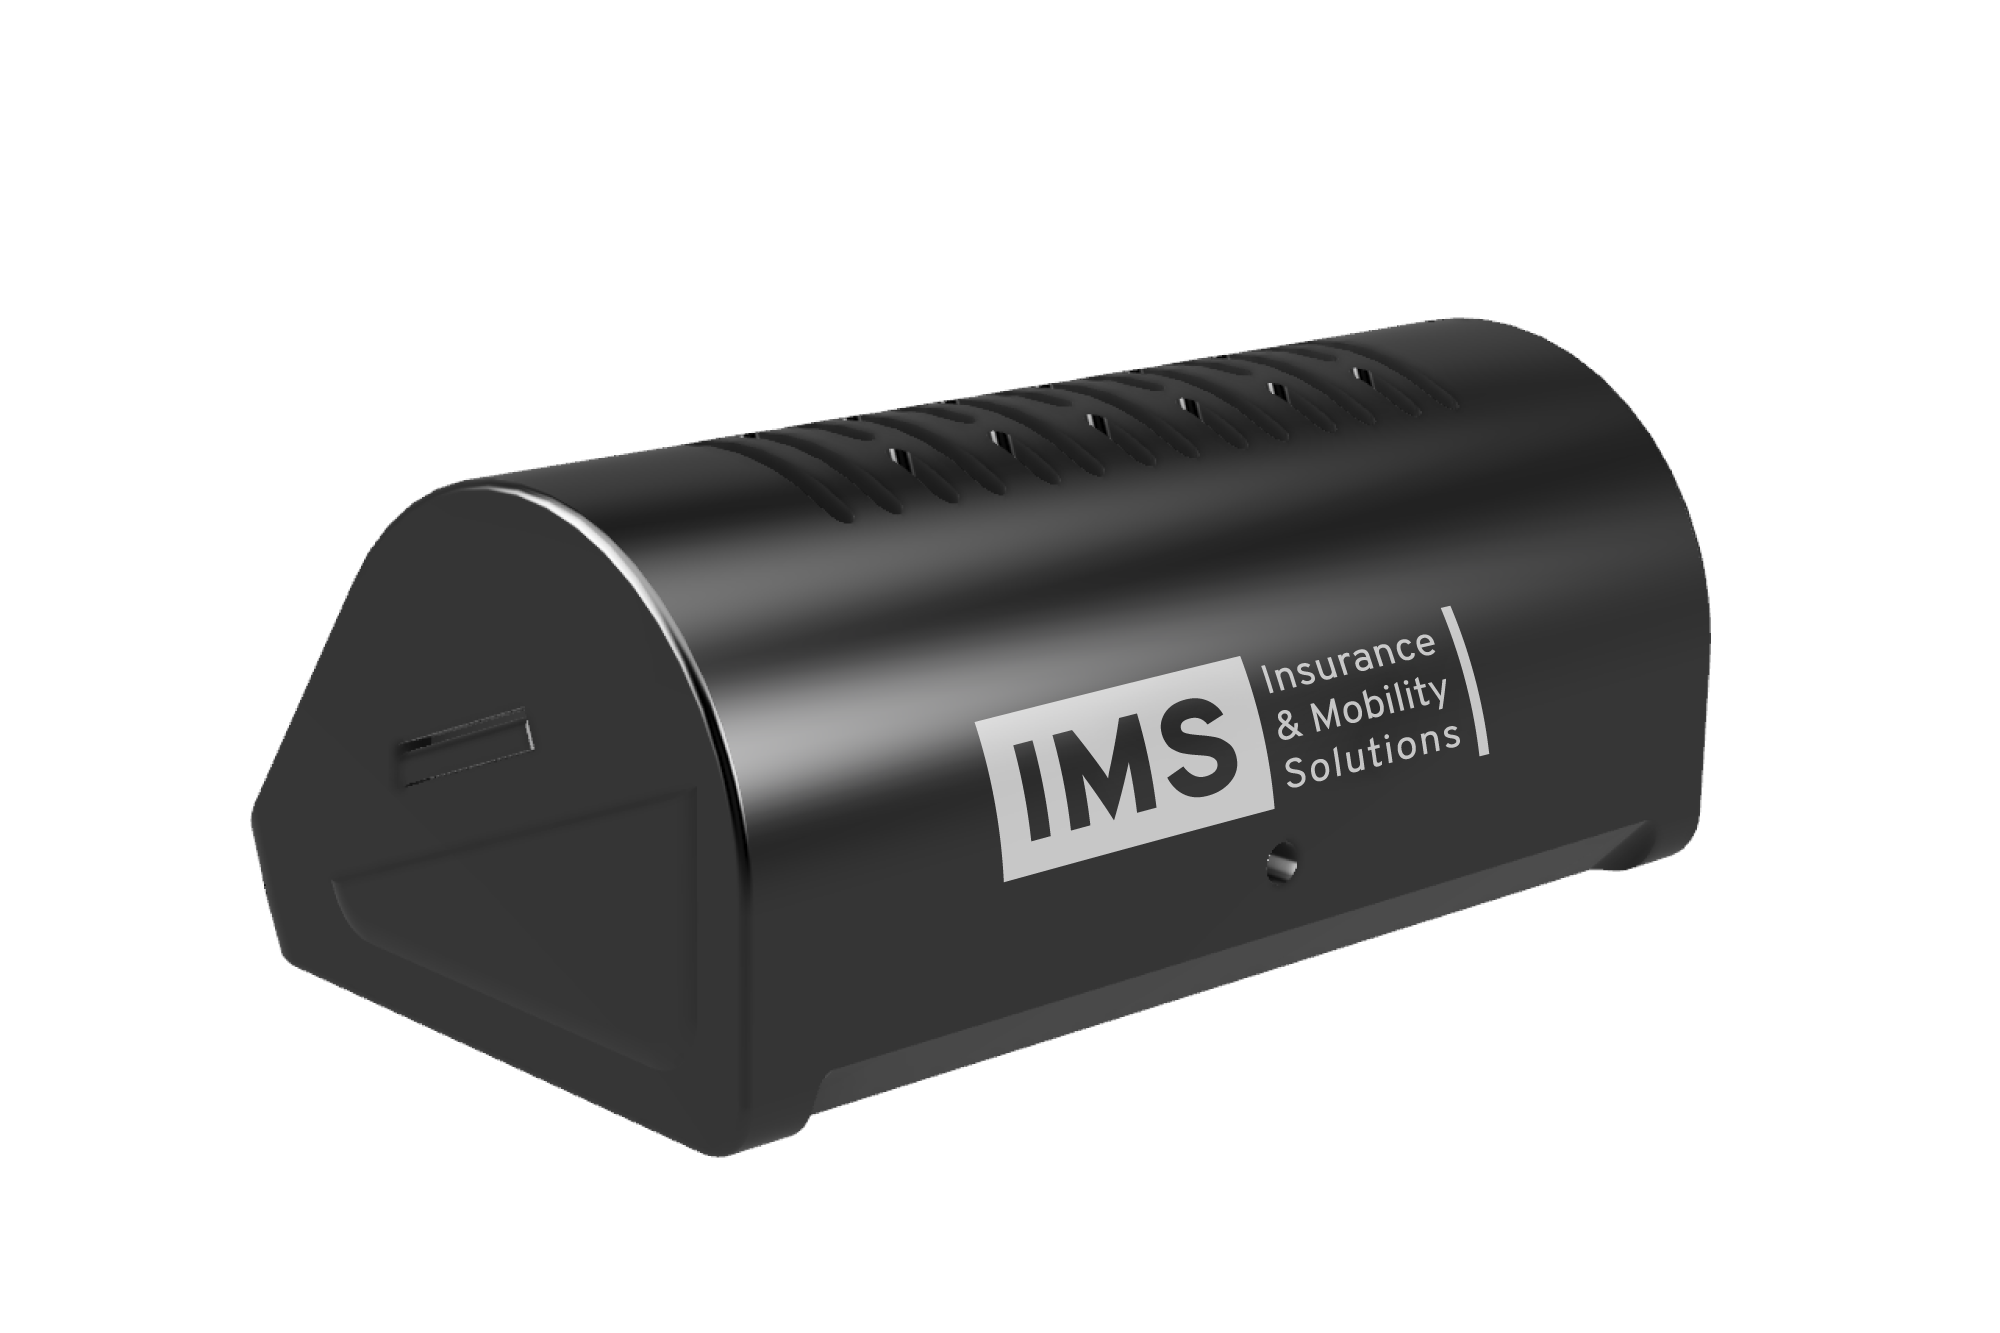 IMS Launches Industry-First, Claims-Focused Telematics Solution, IMS Connected Claims, to Drive Loss Ratio Improvement for Insurers